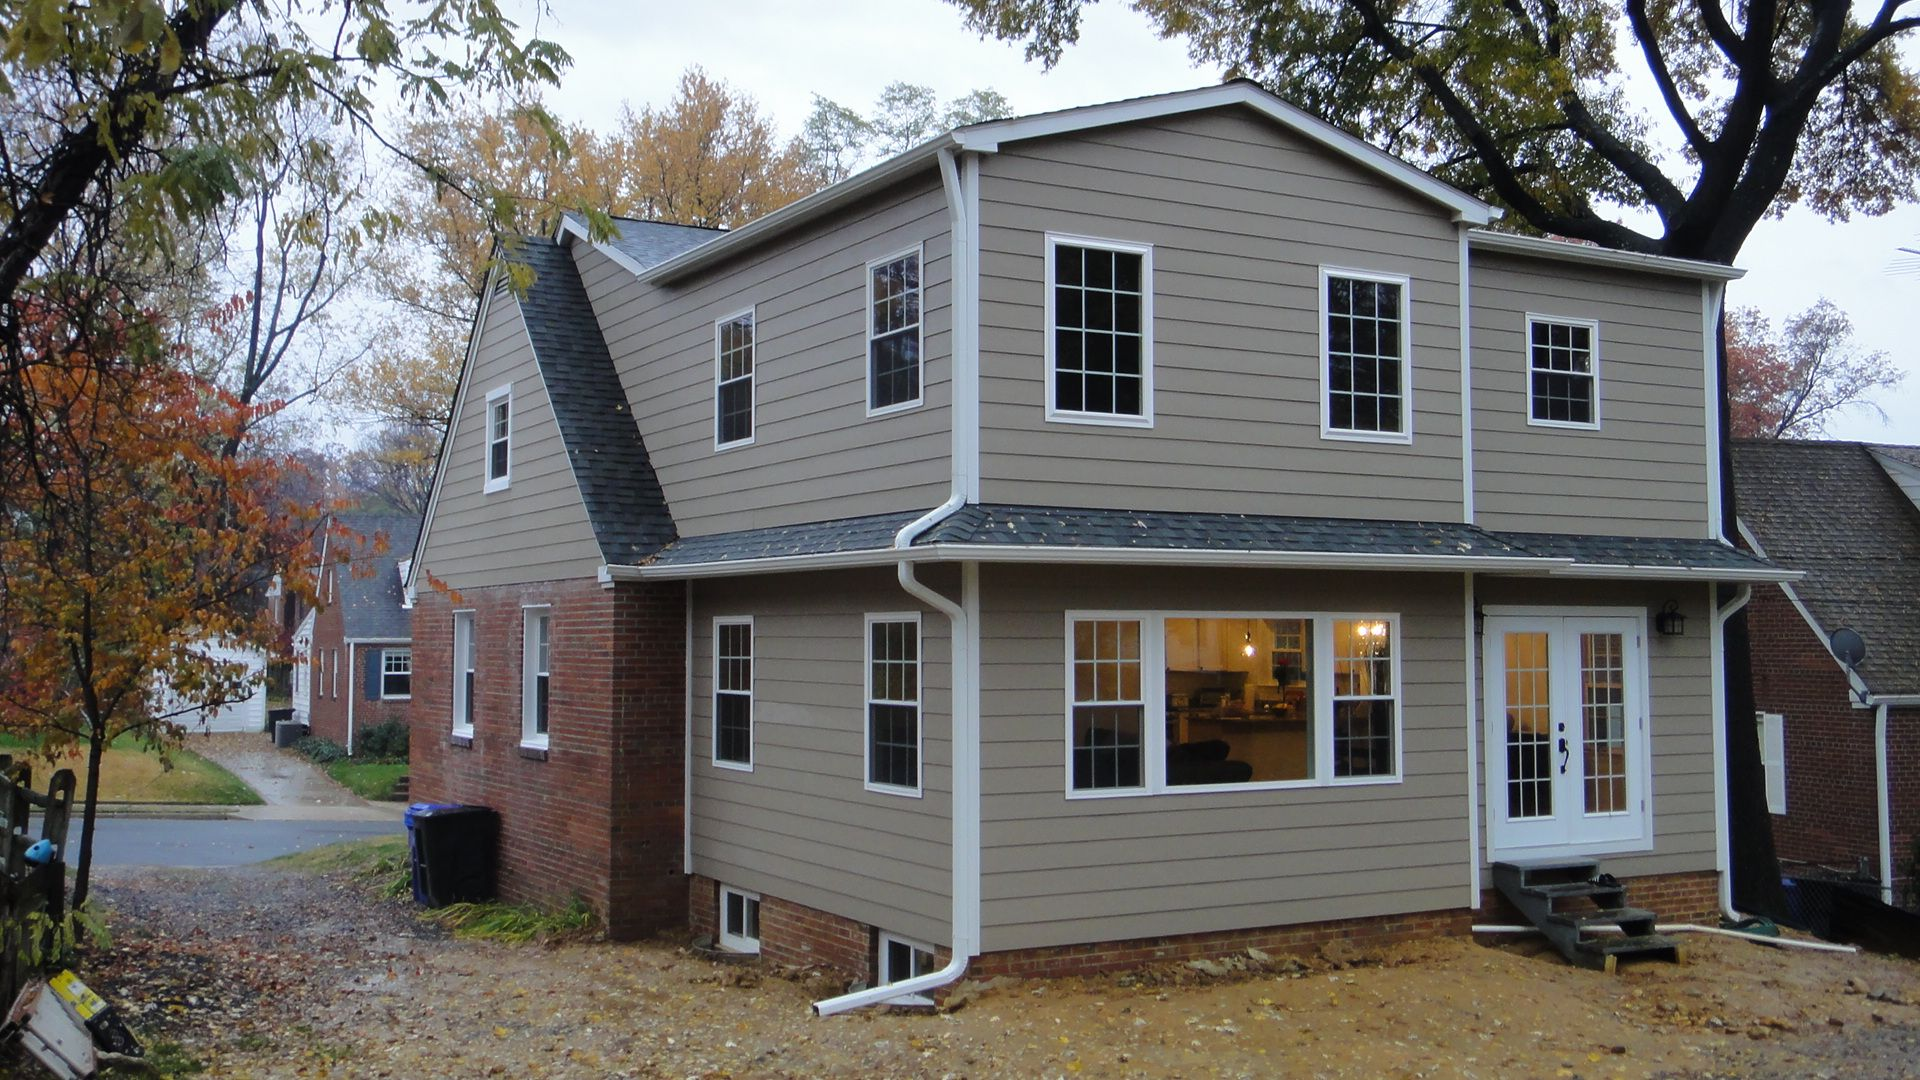 Cape Cod Rear Addition Cook Bros 1 Design Build Remodeling Contractor In Arlington Virginia